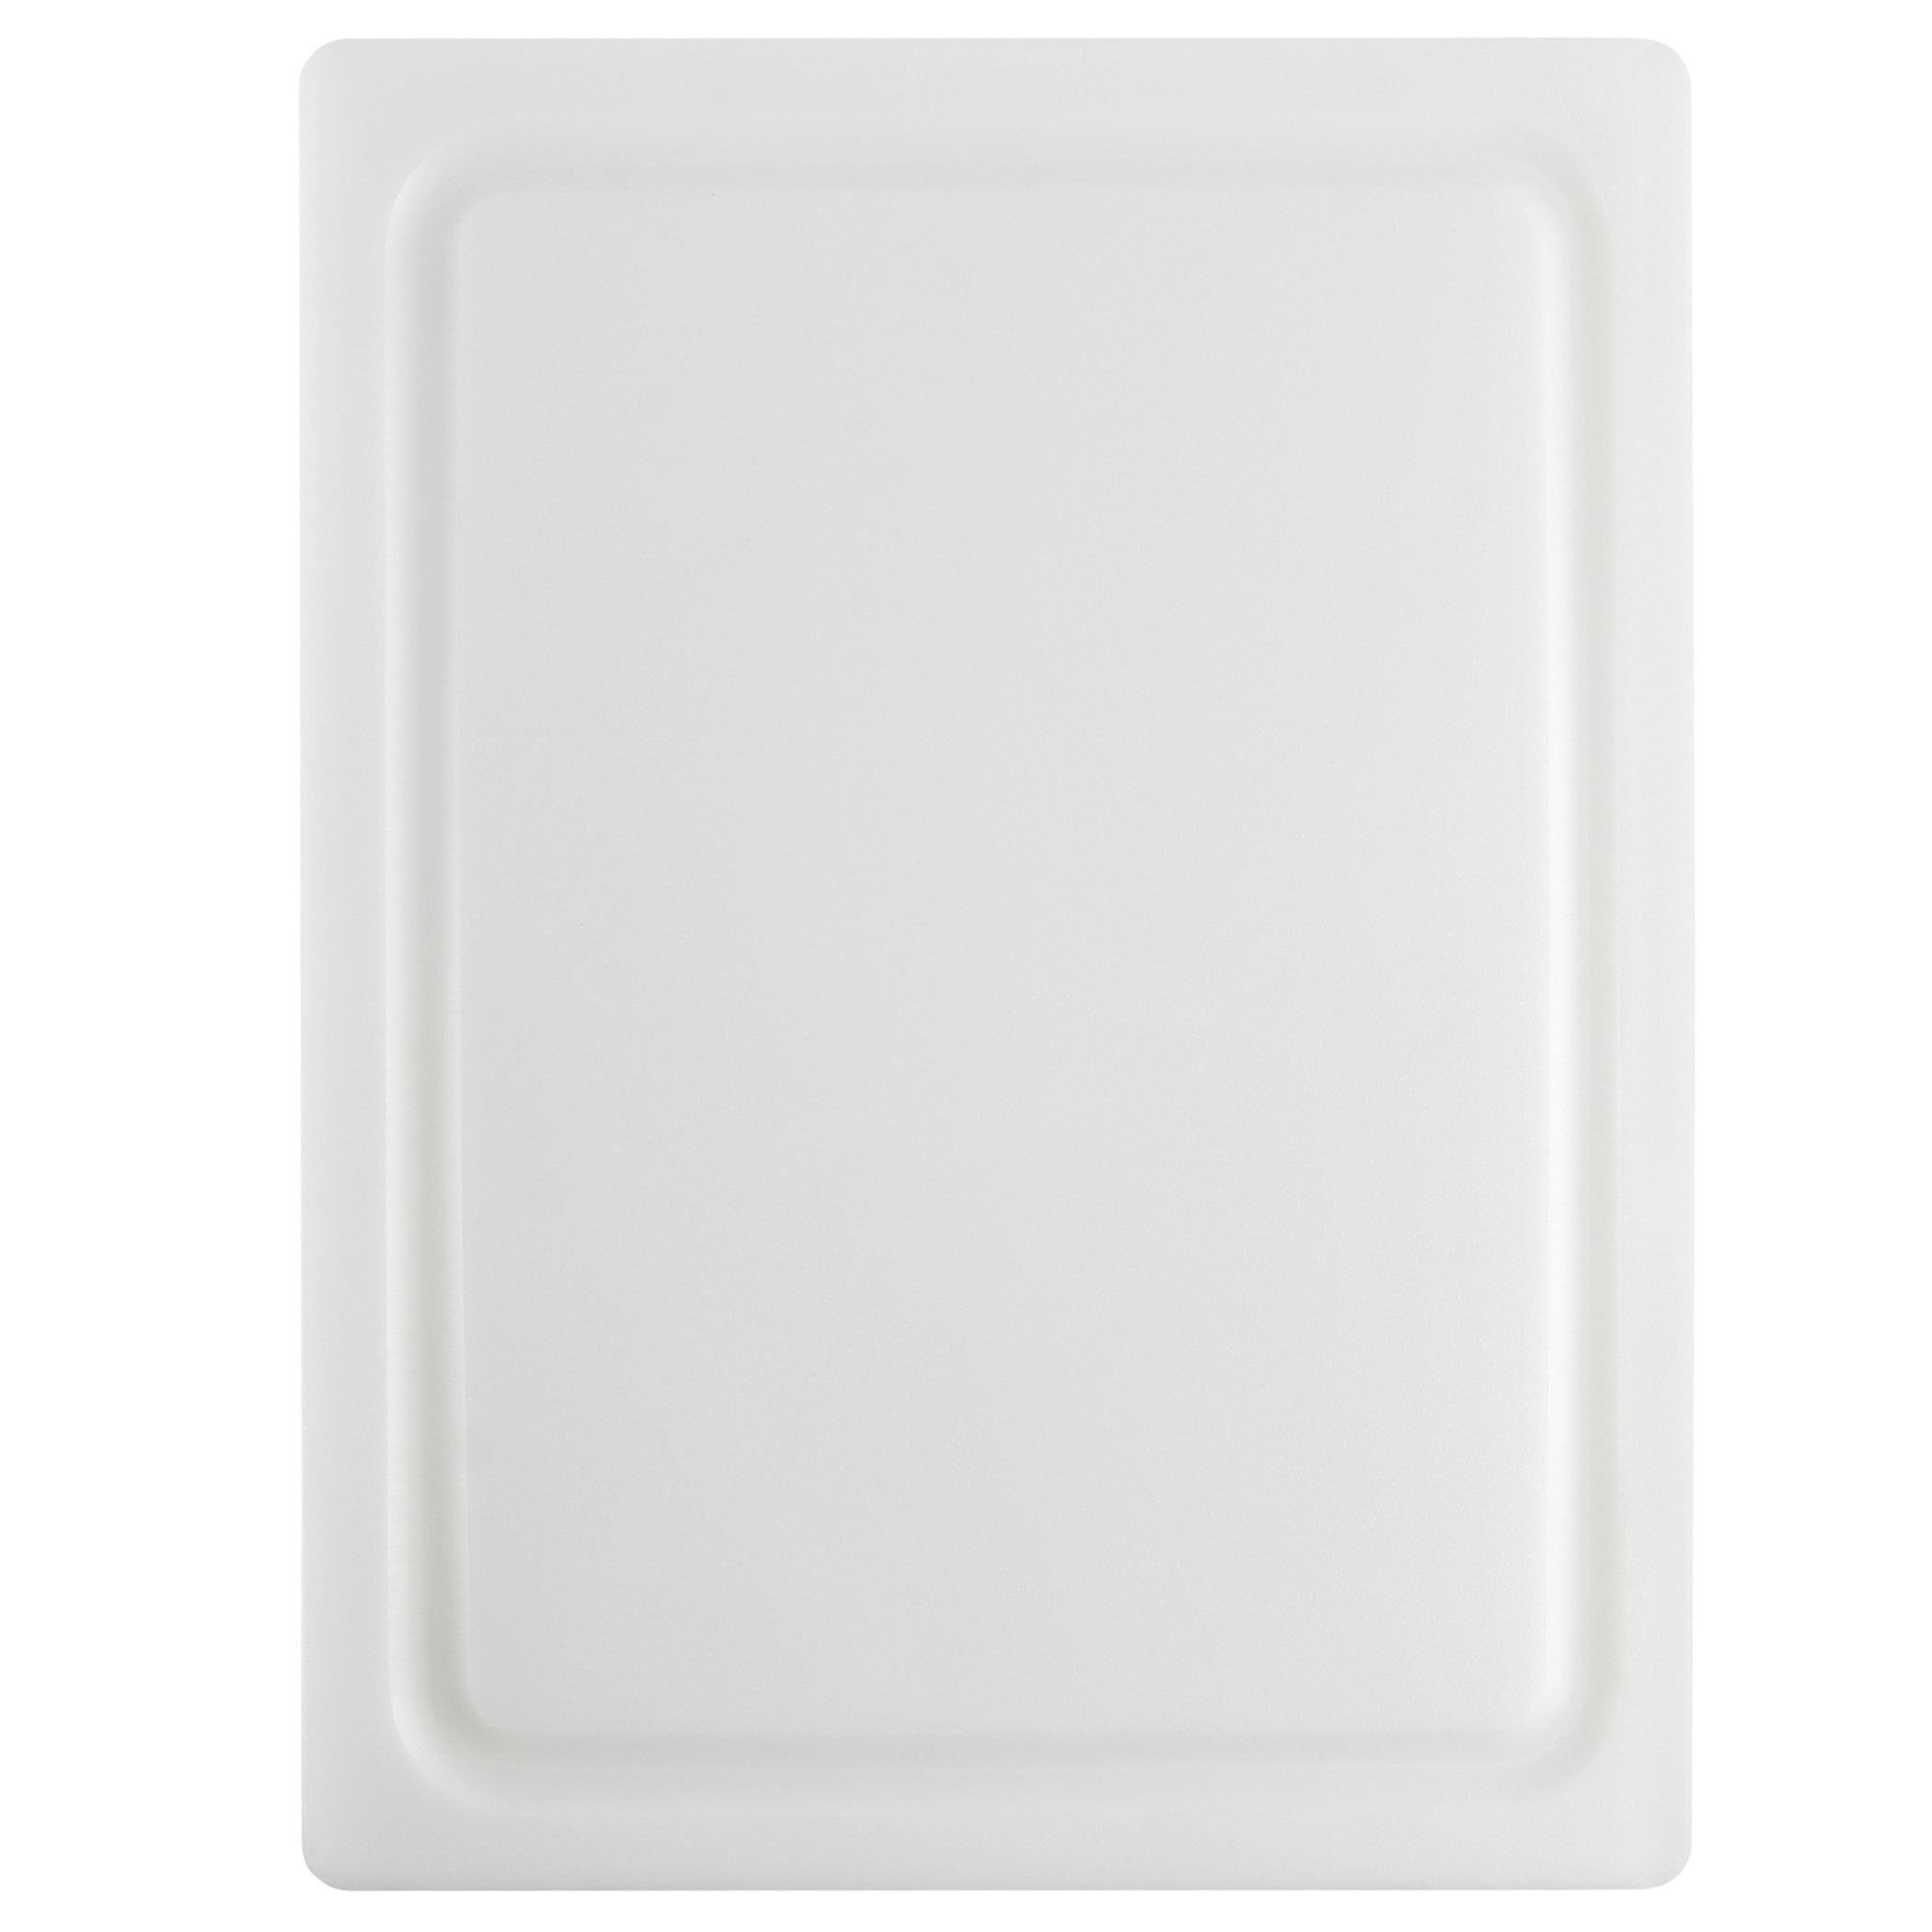 Dexas 4525-133 Nsf Approved Poly Cutting Board with Juice Well,12 x 16 x 5/8 Inches, White by Dexas (Image #1)